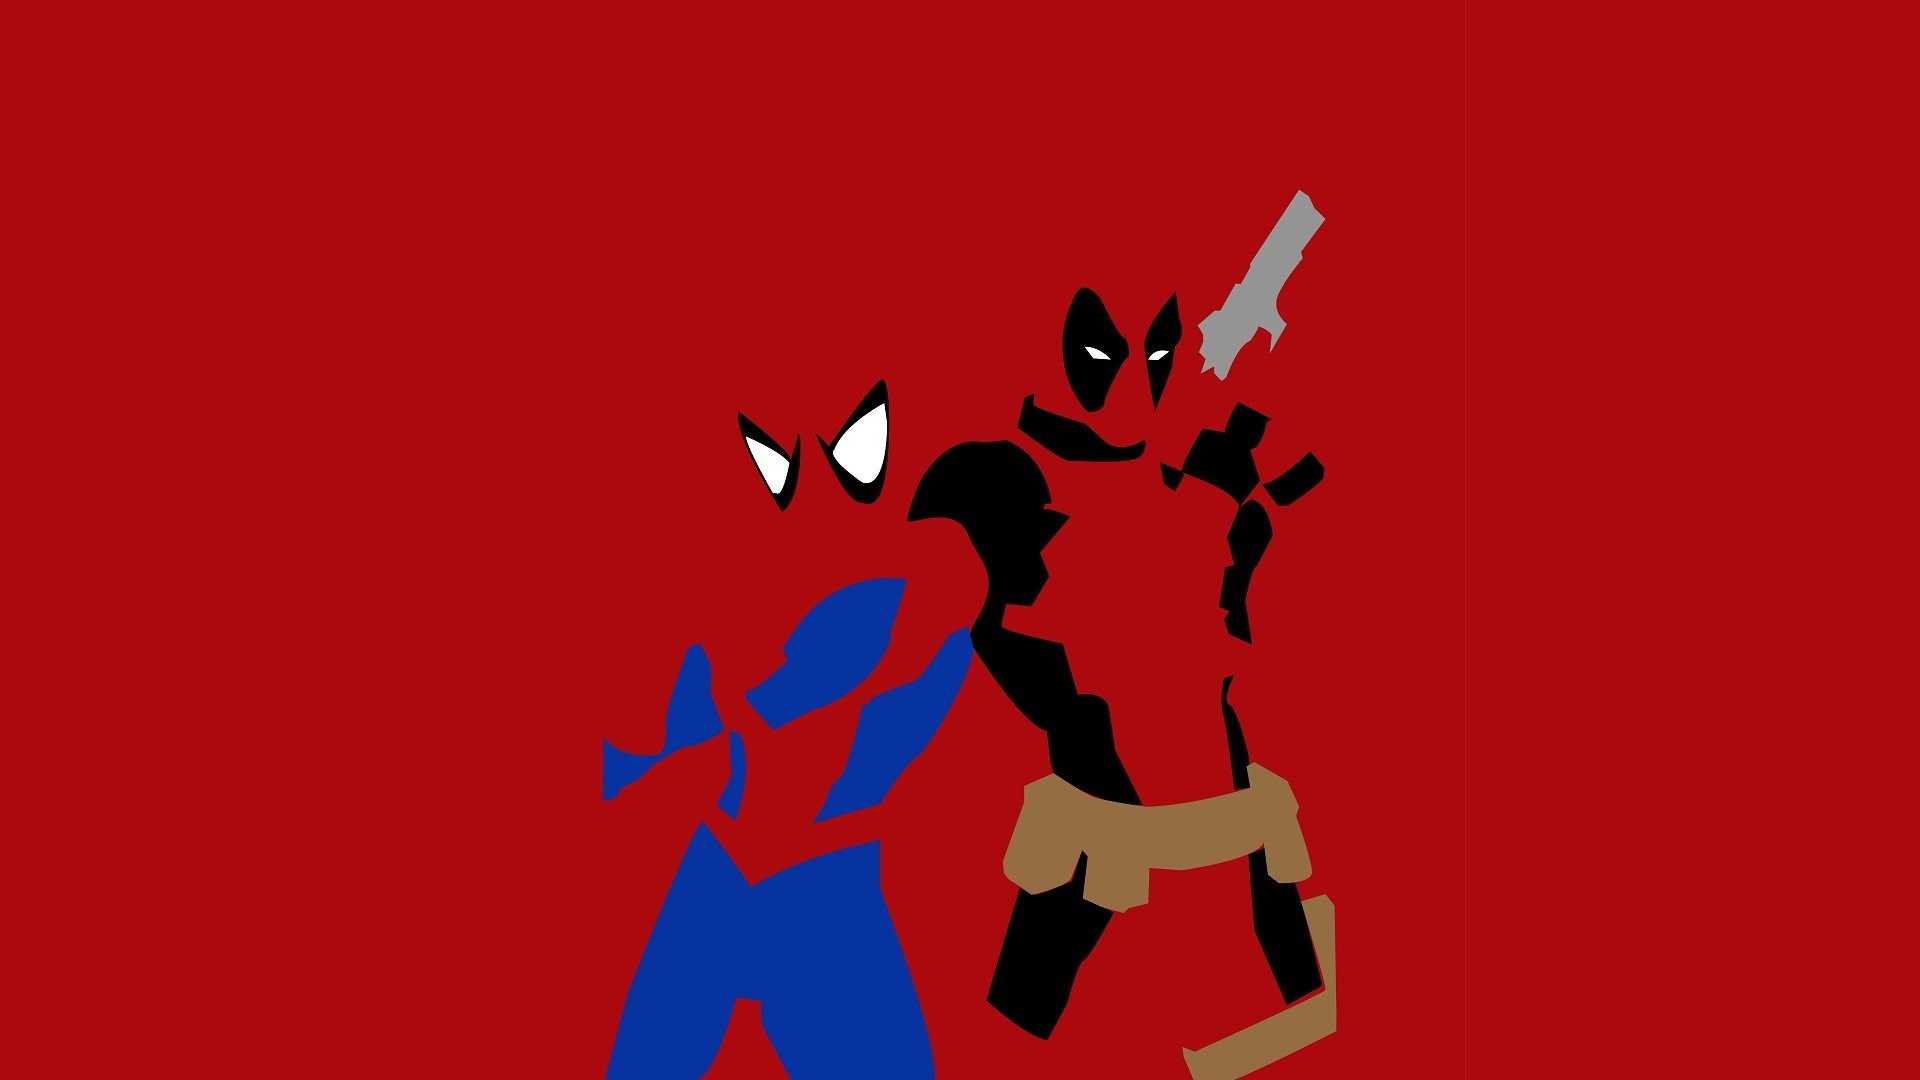 1920x1080 Spiderman And Deadpool Wallpapers For Iphone